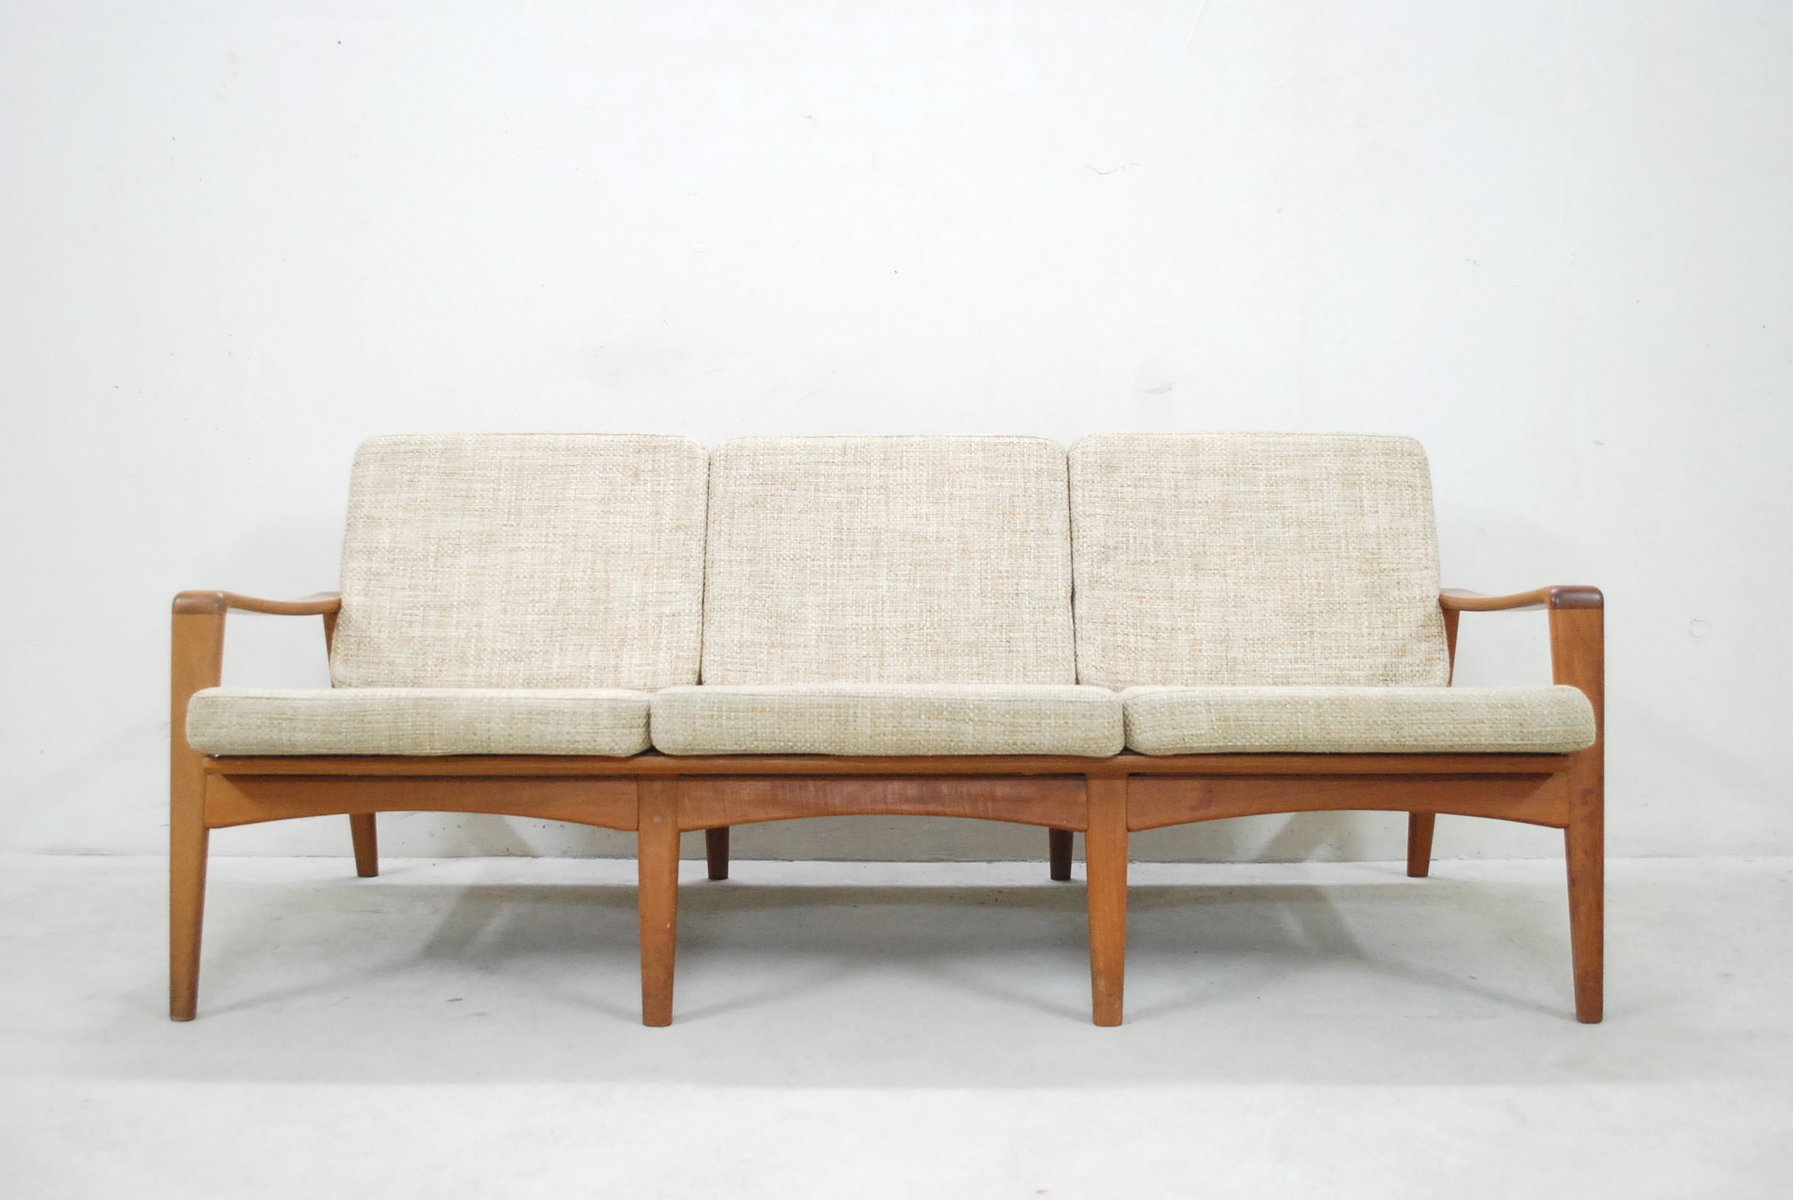 vintage danish 35 teak sofa by arne wahl iversen for komfort for sale at pamono. Black Bedroom Furniture Sets. Home Design Ideas